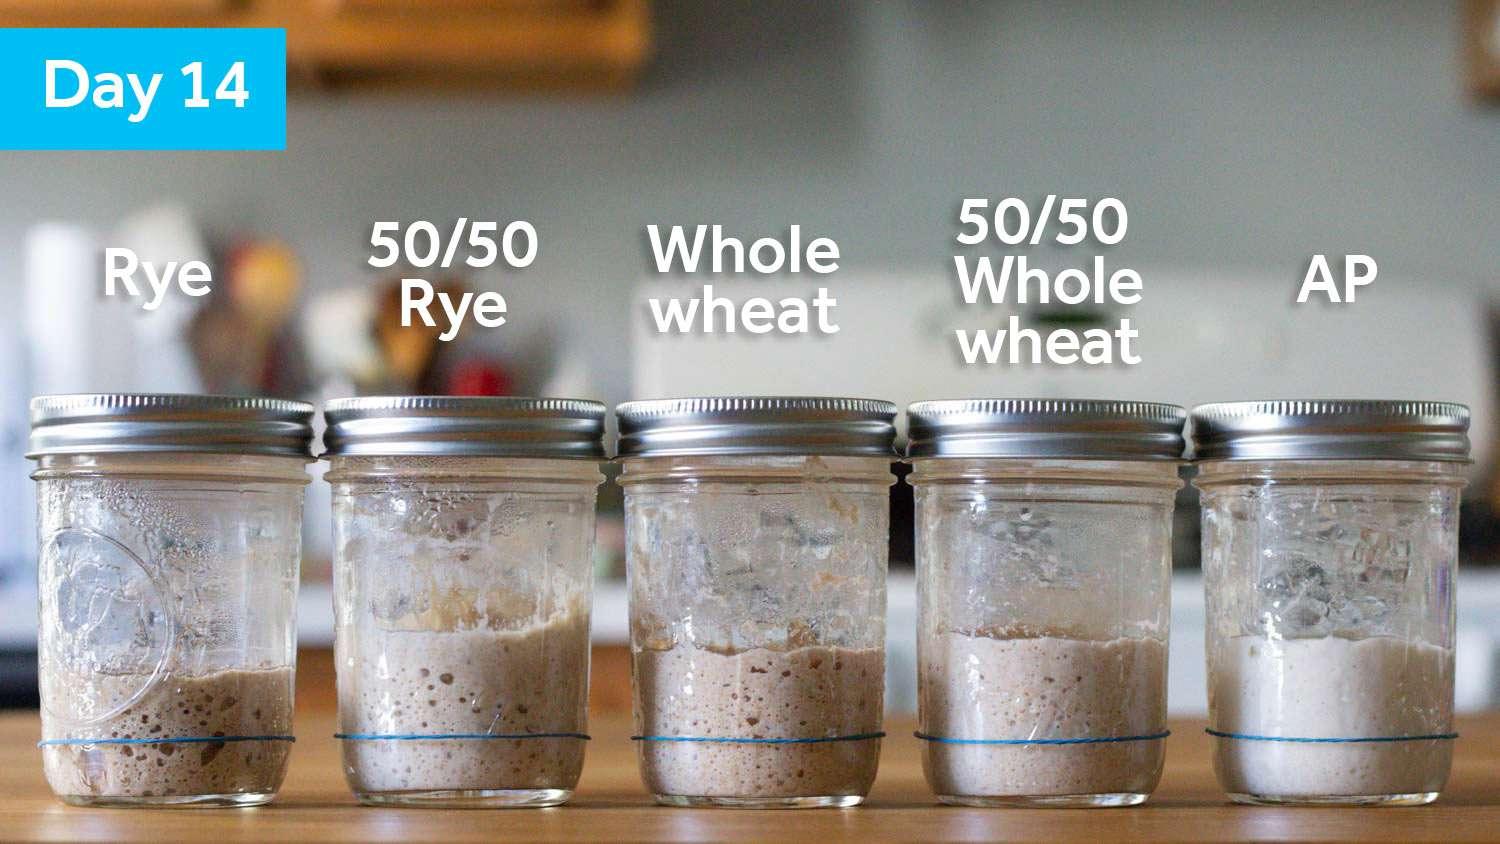 All the samples on Day 14; they all look similarly risen except for the 100% rye sample, which is slightly lower